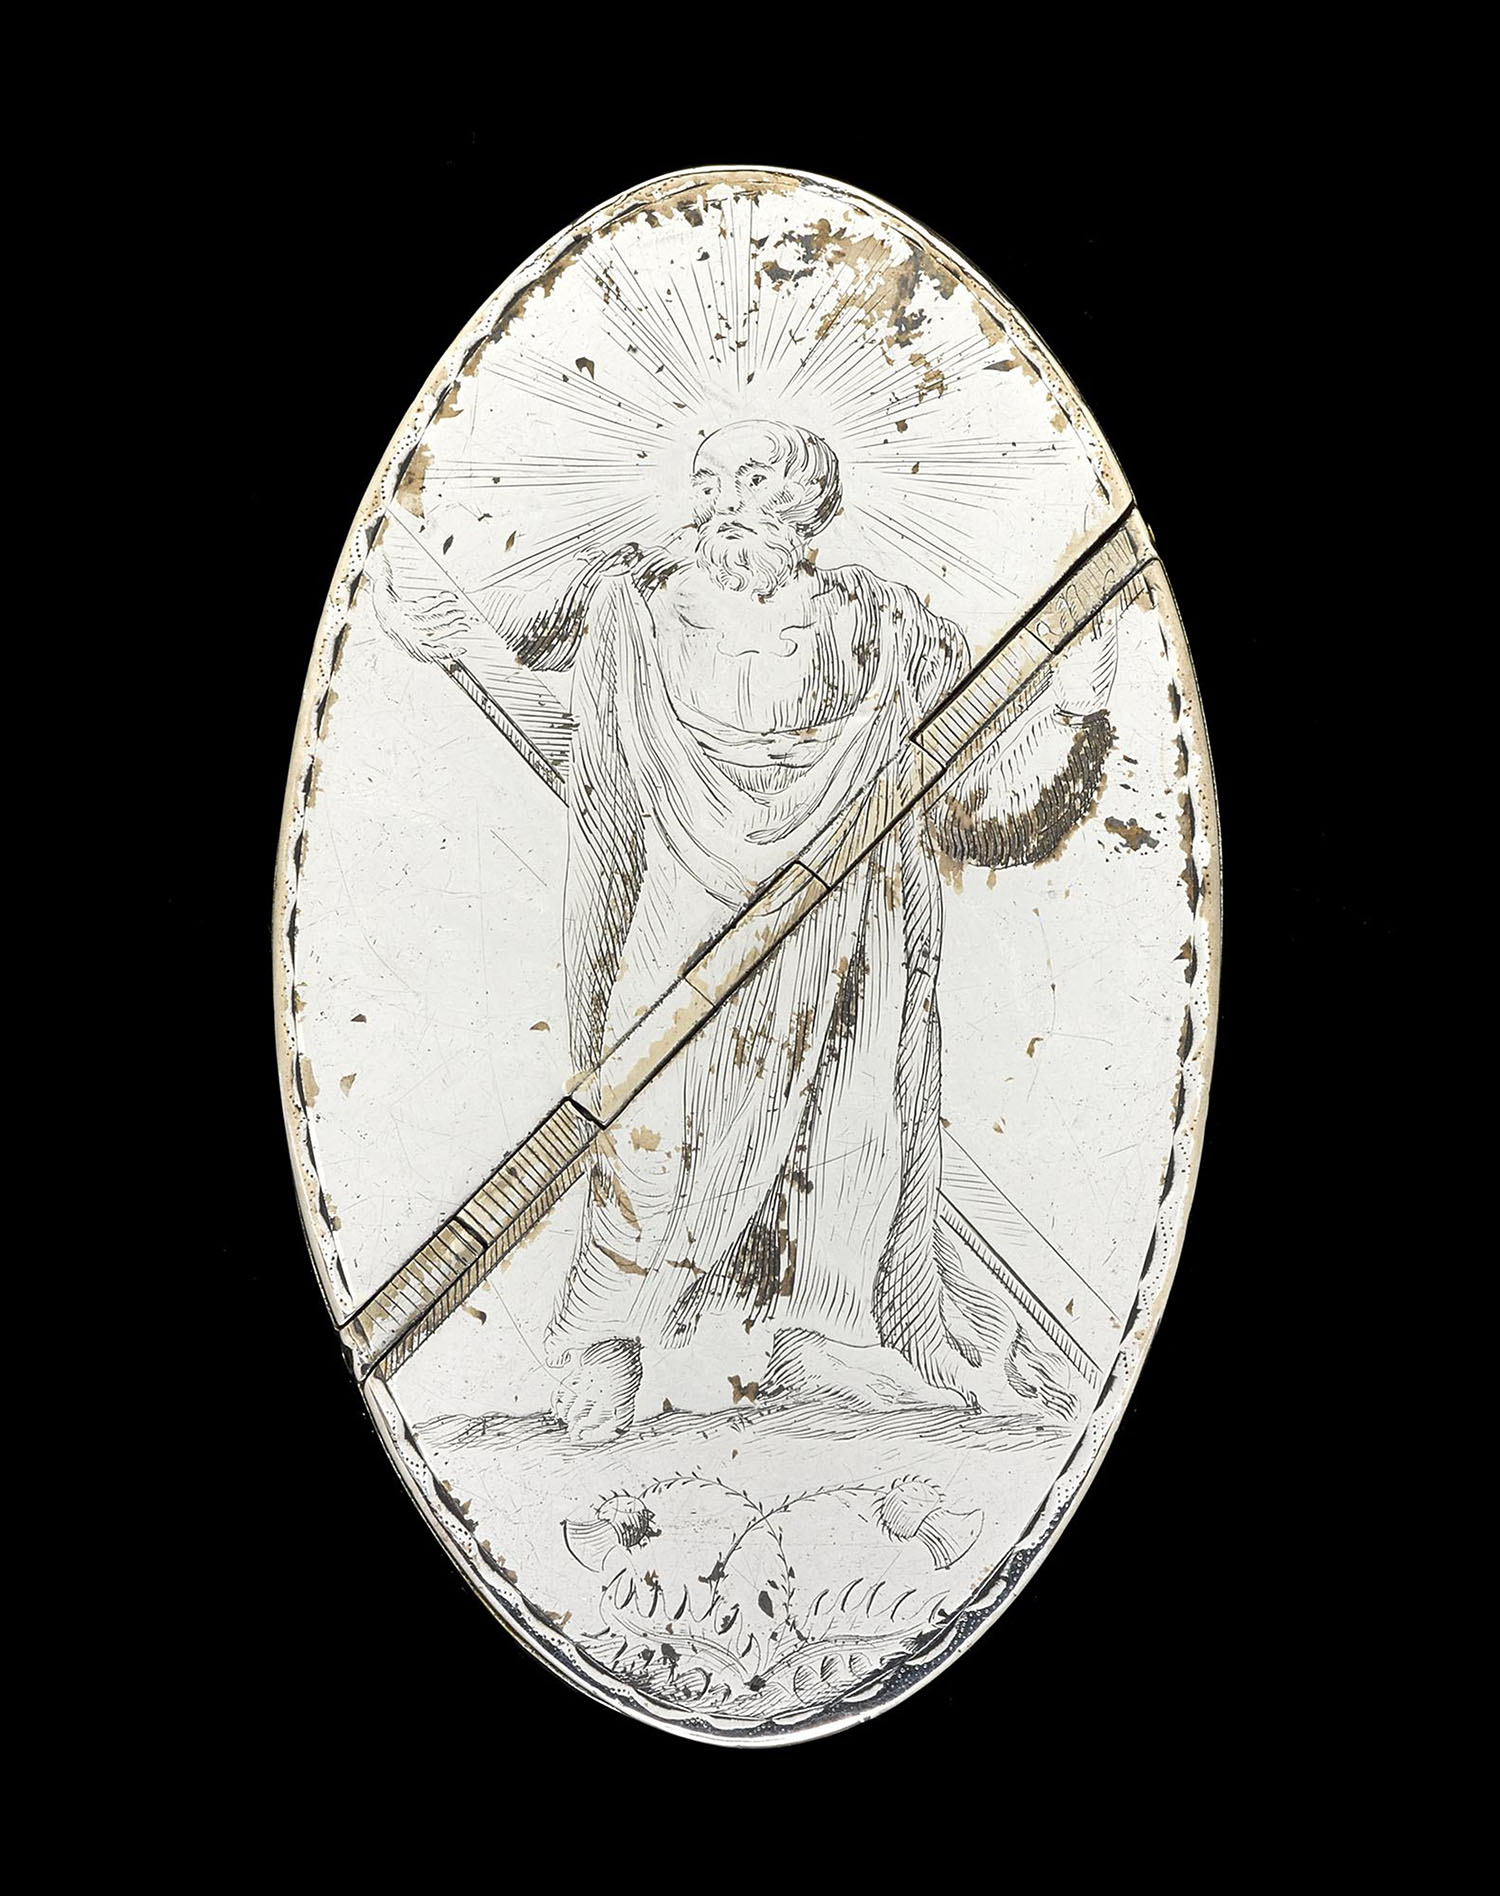 Pointed oval, silver snuffbox with straight sides and a double lid, engraved with the figure of St Andrew, possibly by Robert Bowman, Edinburgh, dated 1818. On display in the Art of Living gallery at the National Museum of Scotland.